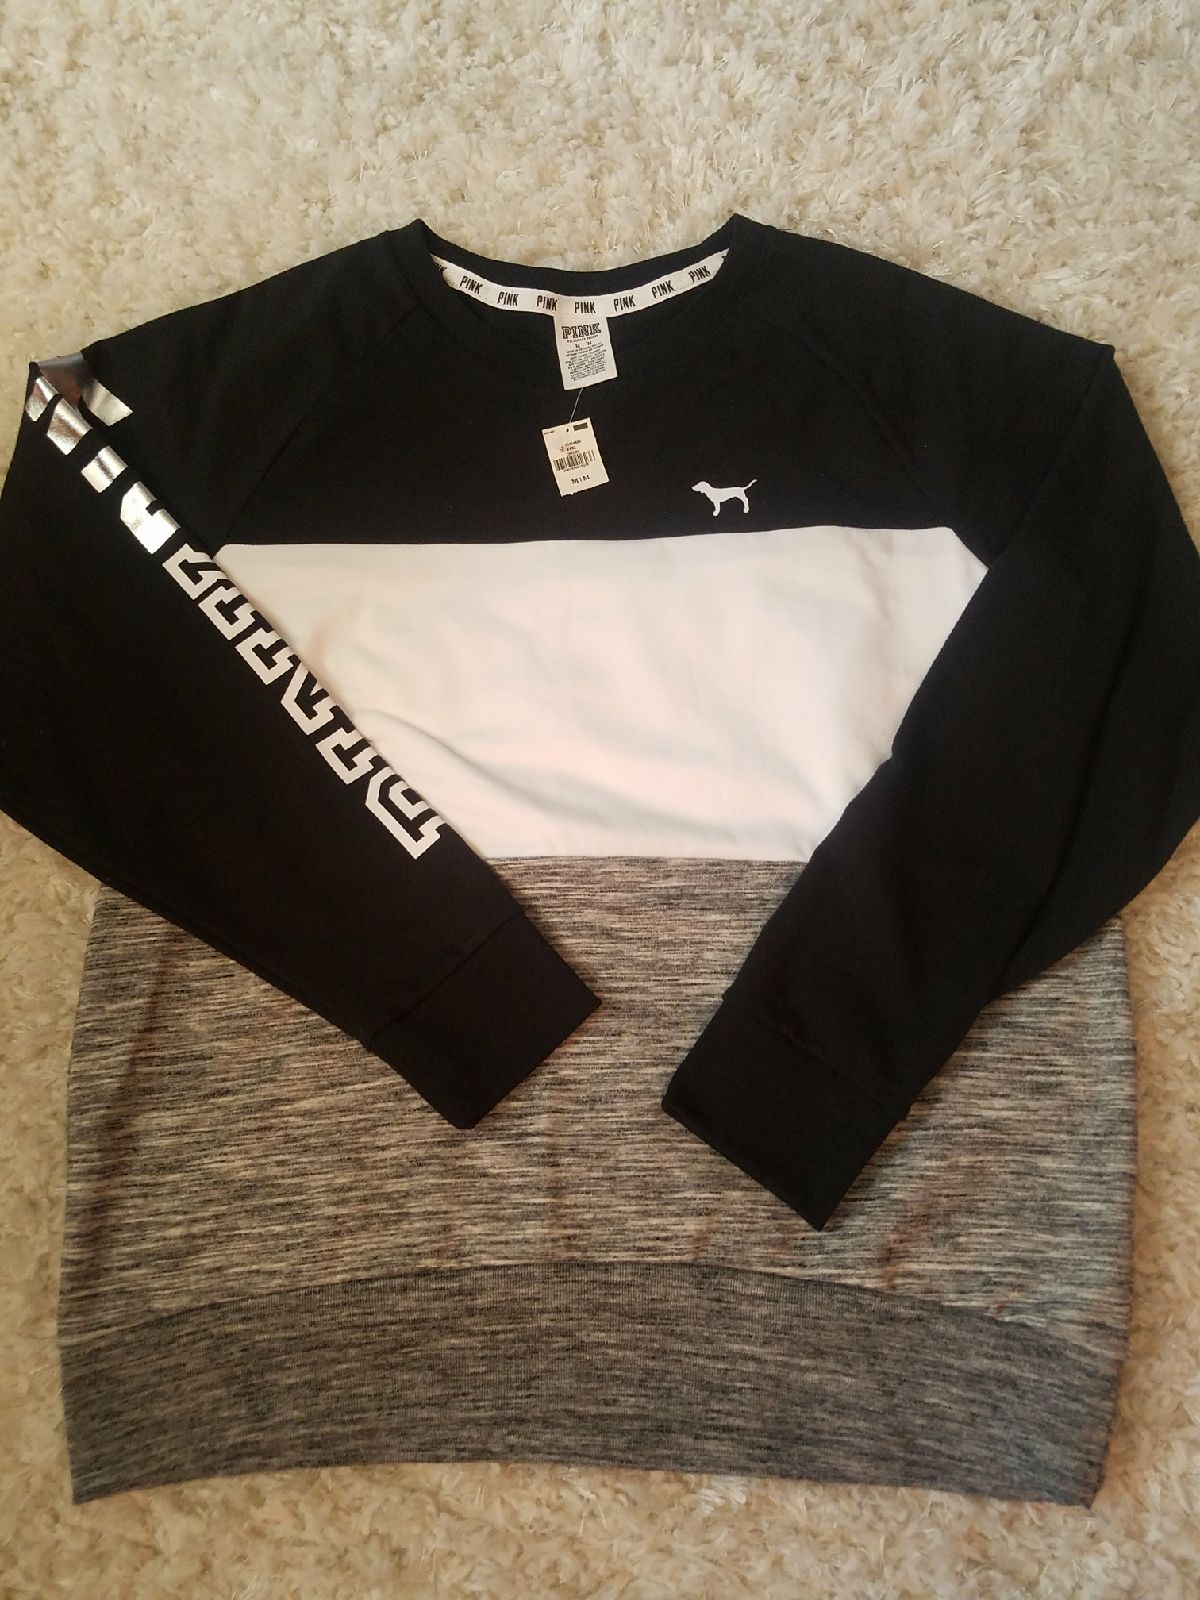 VS pink crew neck sweatshirt - Mercari: BUY & SELL THINGS YOU LOVE